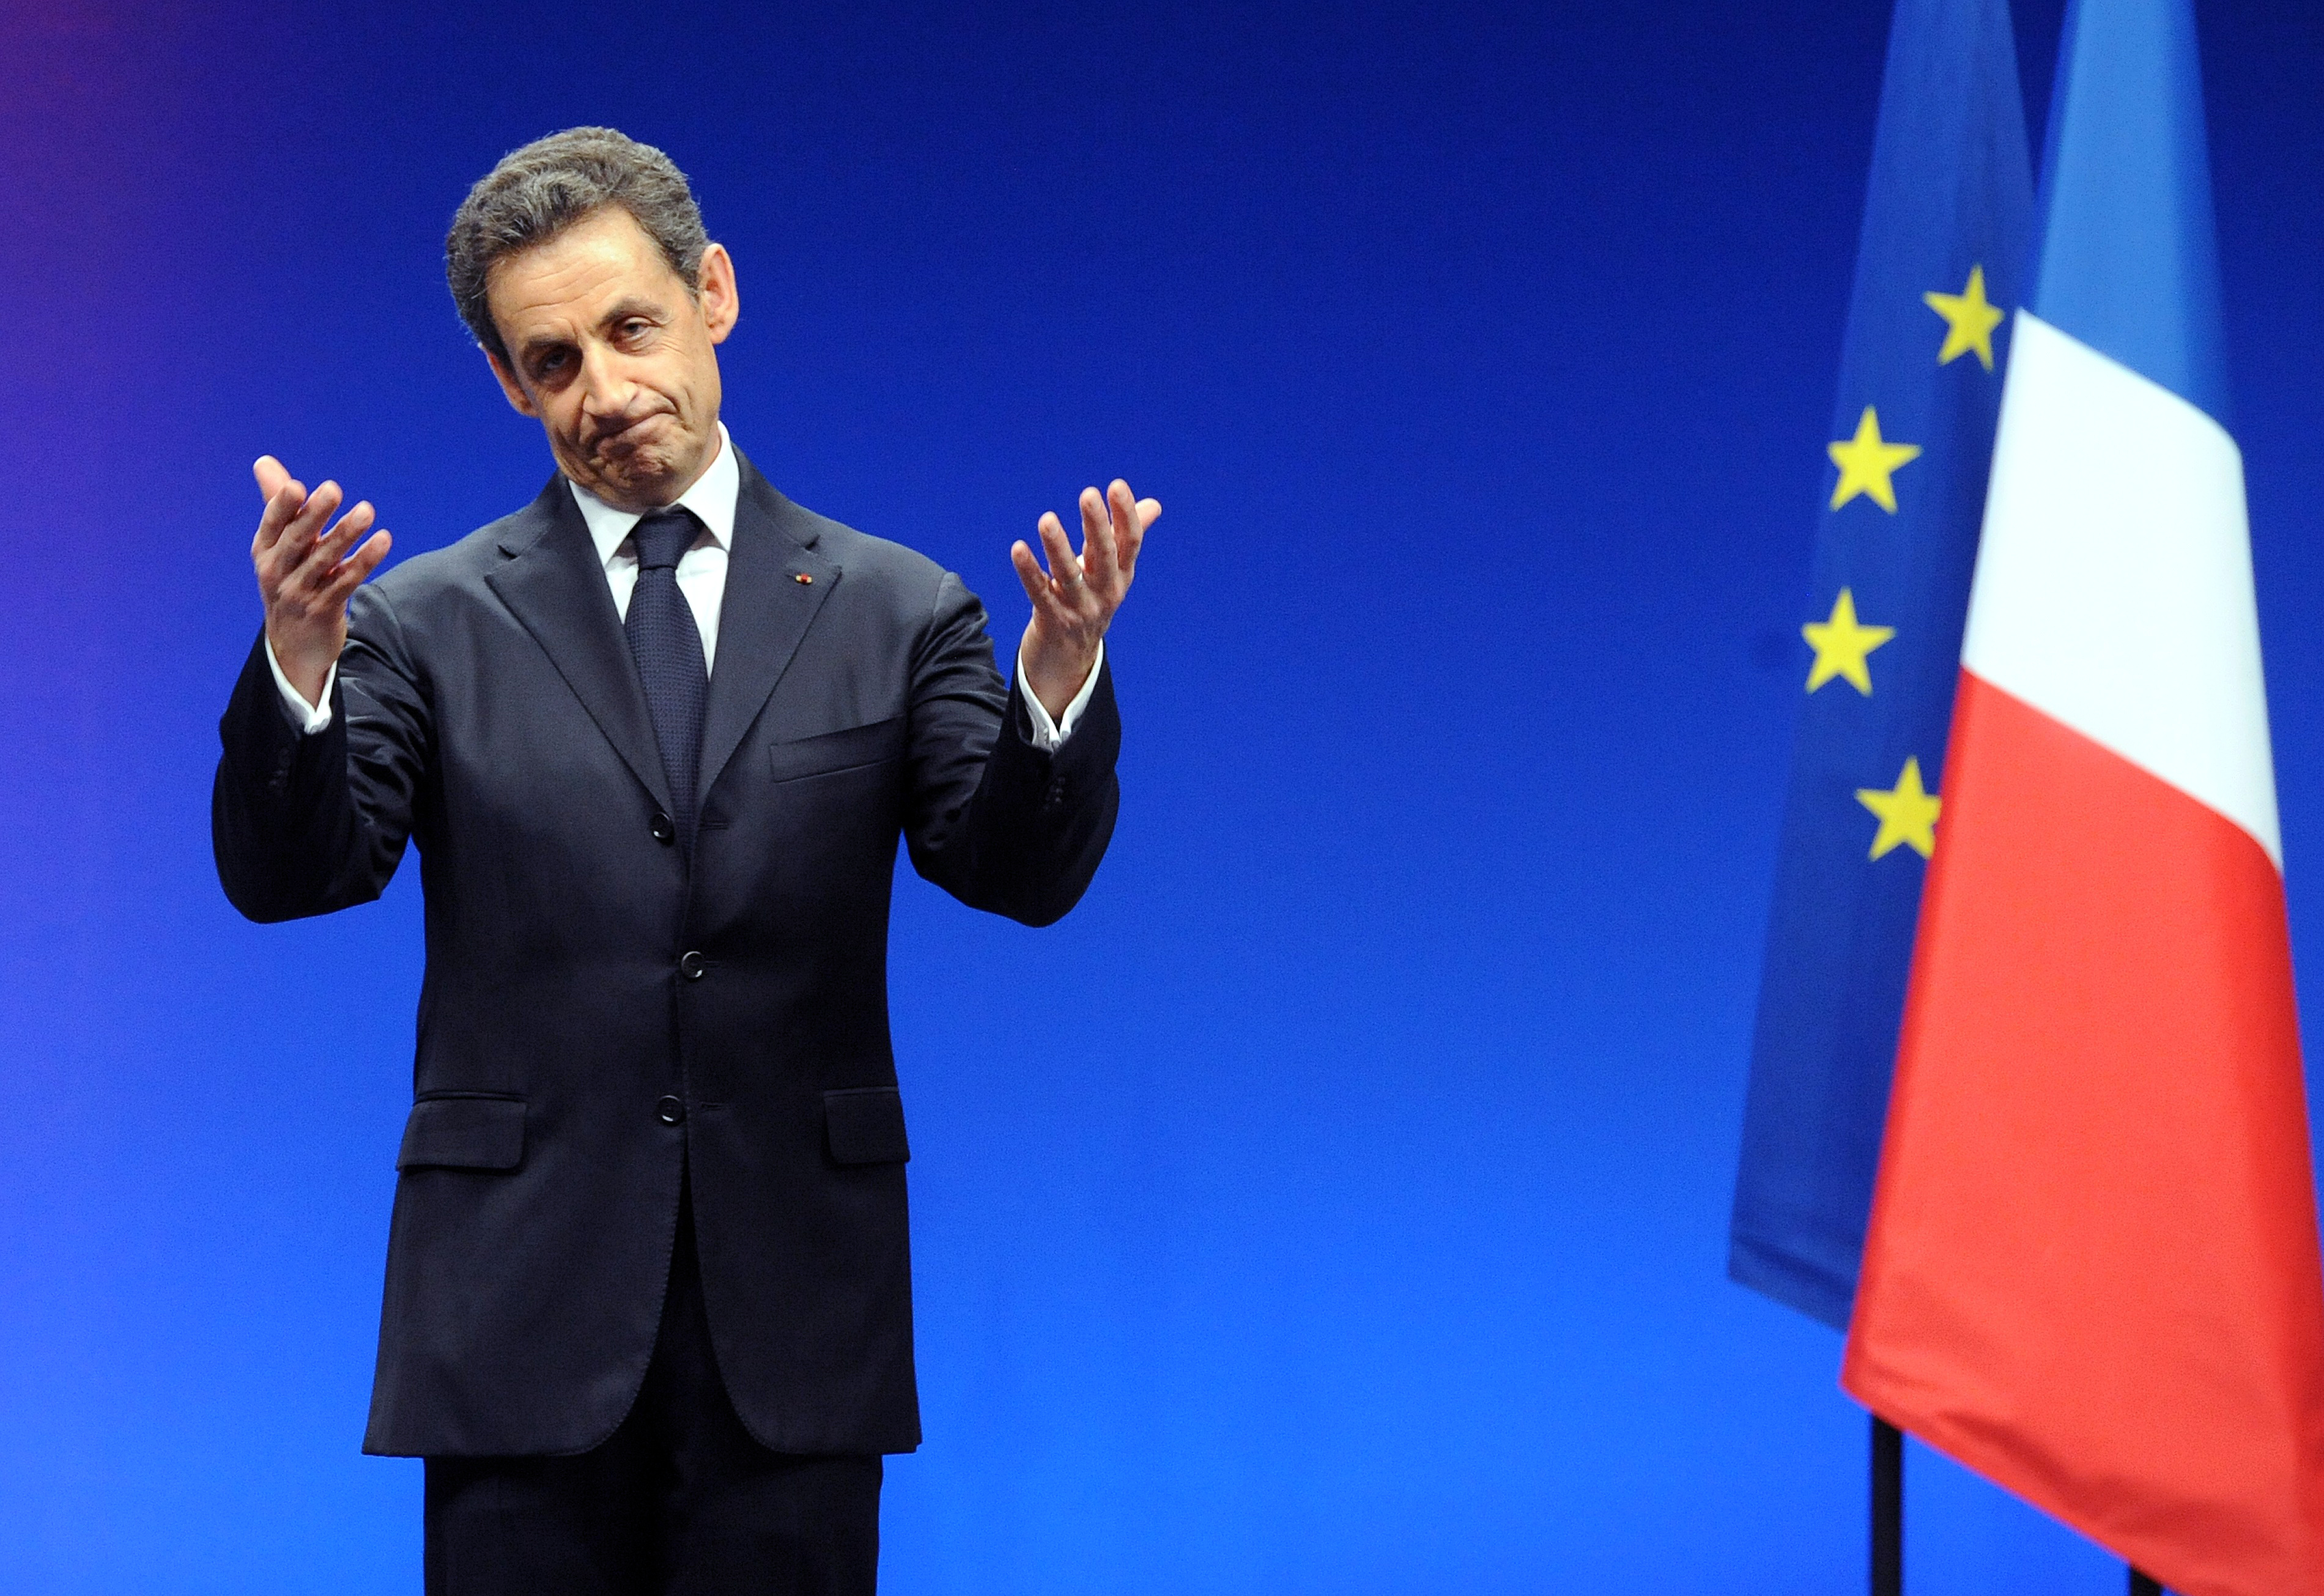 (FILES)-- A file photo taken on February 28, 2012 shows France's President at the time and Union for a Popular Movement (UMP) party candidate for 2012 presidential election Nicolas Sarkozy gesturing to the crowd at the end of a campaign meeting  in Montpellier, southeastern France. The Paris prosecutor's office, in a statement released on July 29, 2014, denied having recently opened an investigation into the financing of the 2007 presidential campaign of Nicolas Sarkozy. AFP PHOTO / PASCAL GUYOT